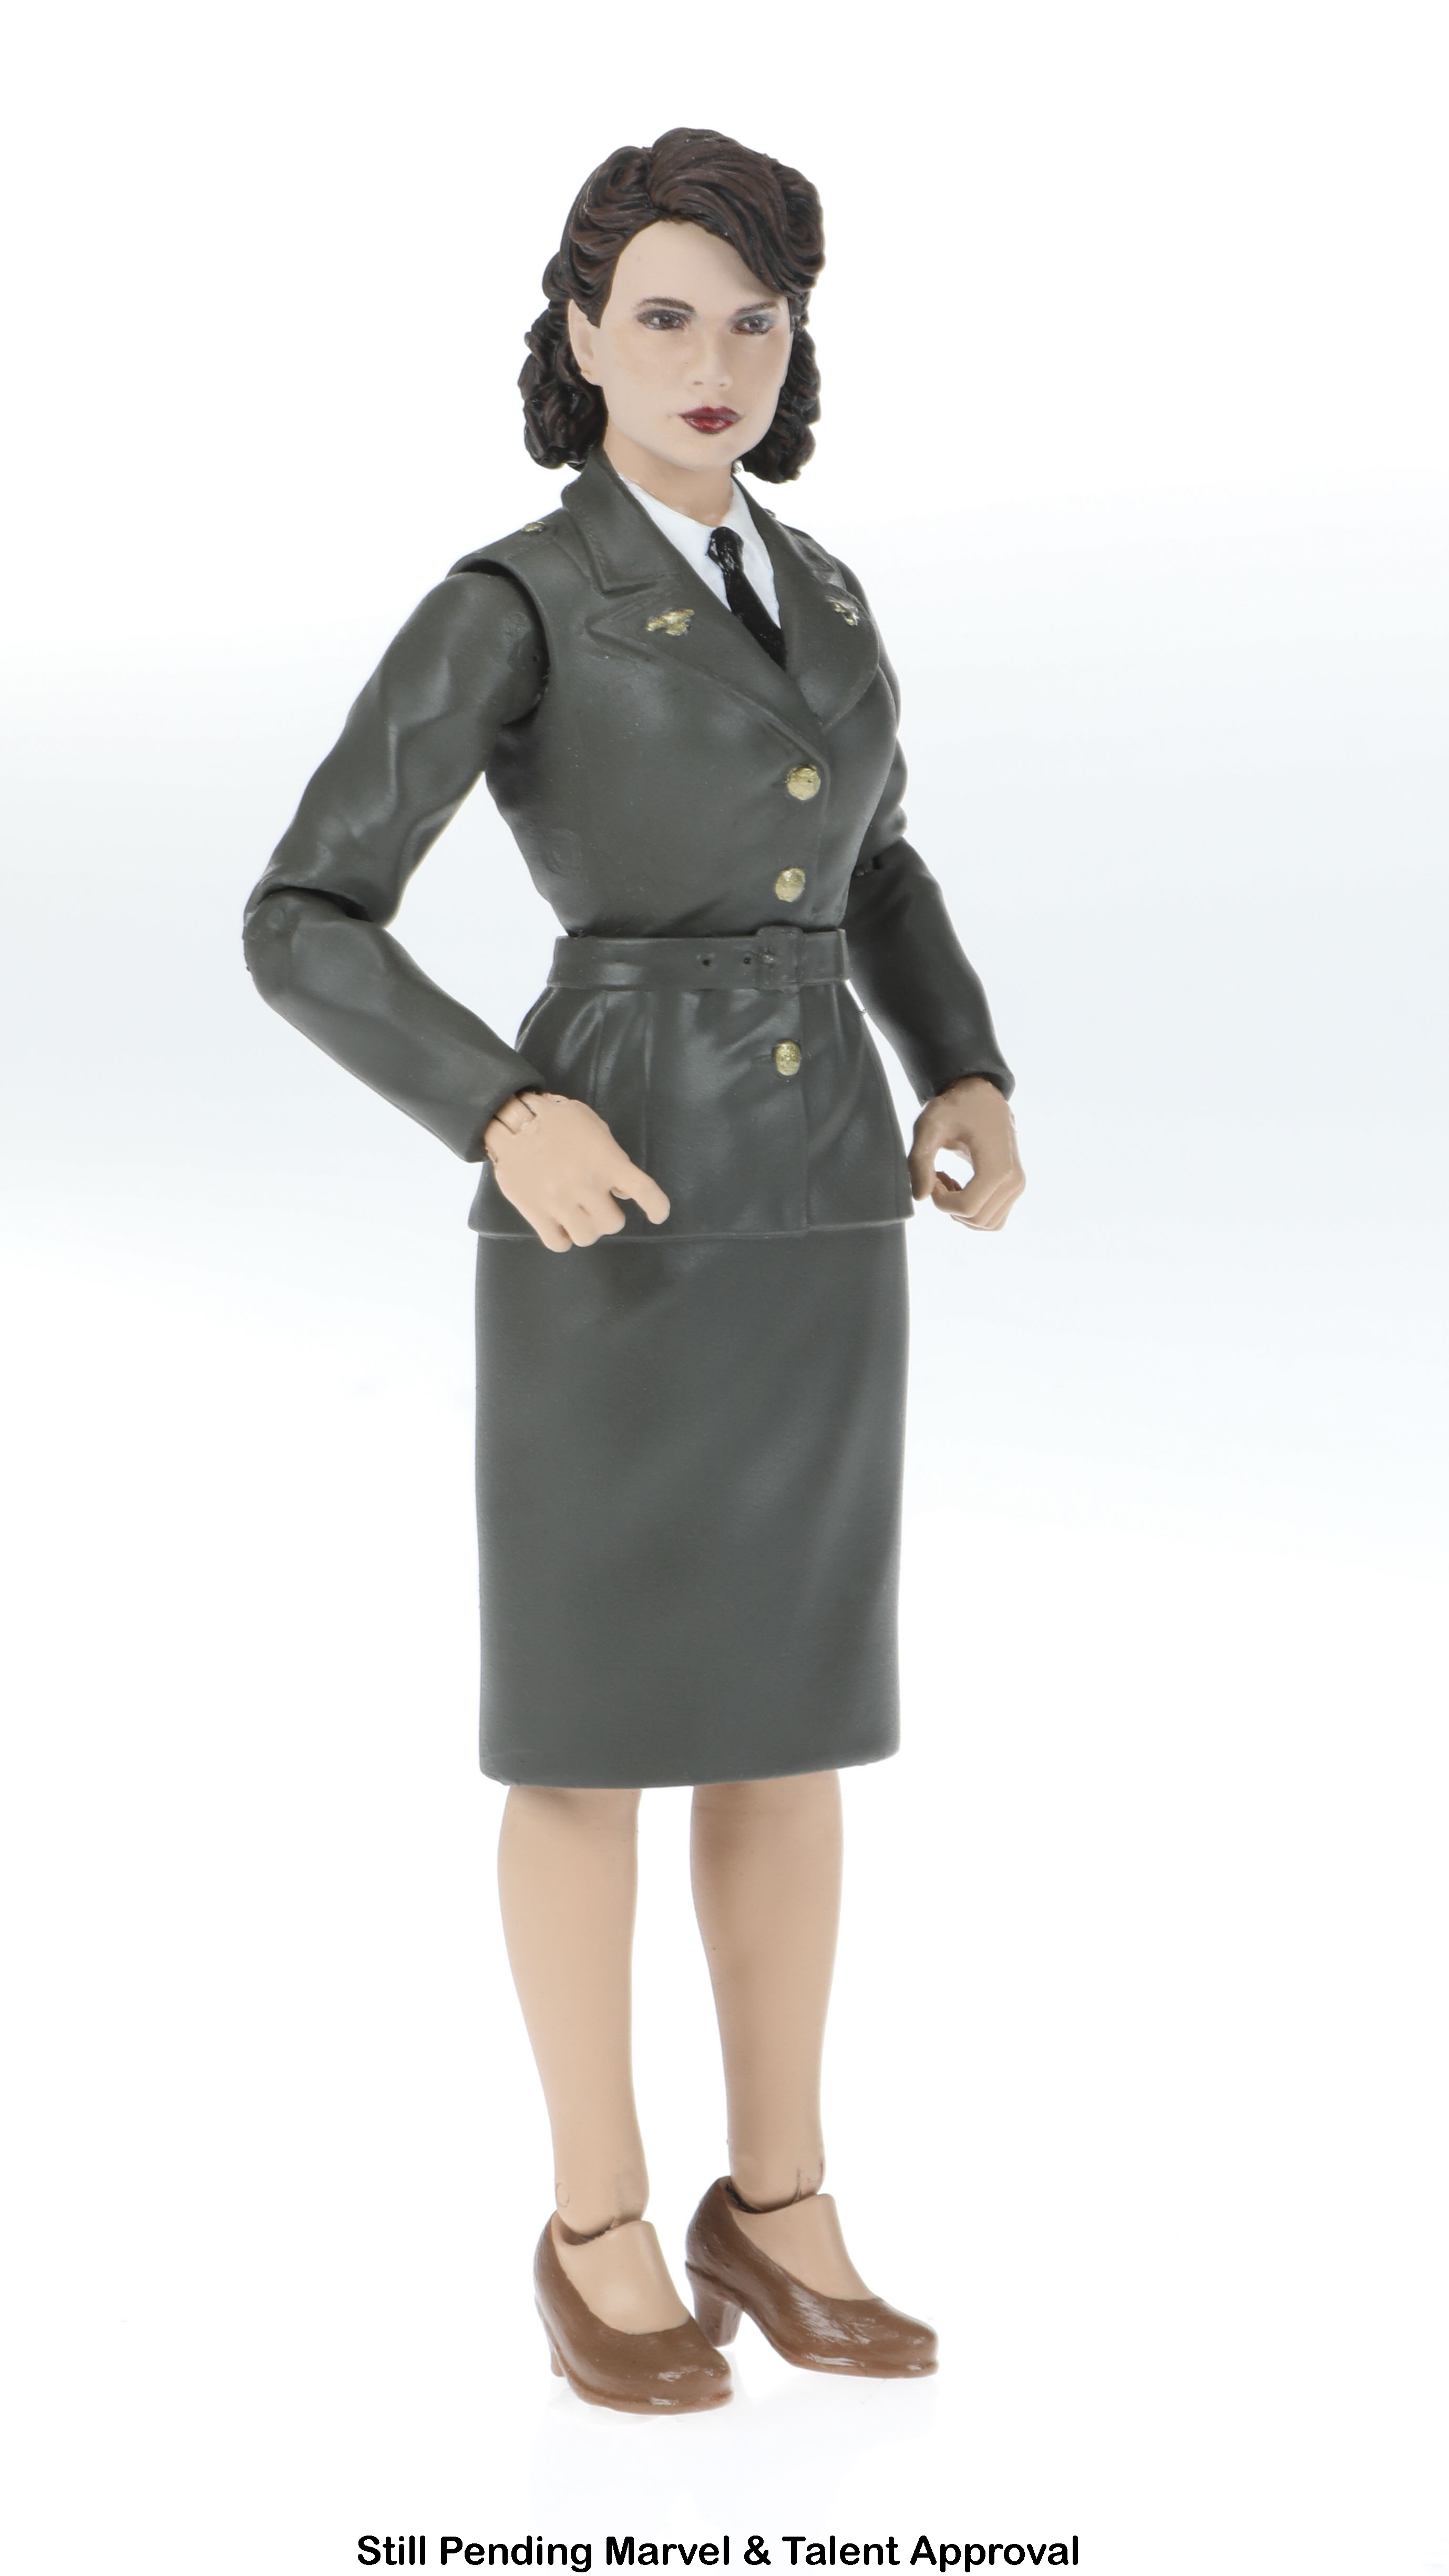 Peggy Carter Finally Gets an Action Figure_2